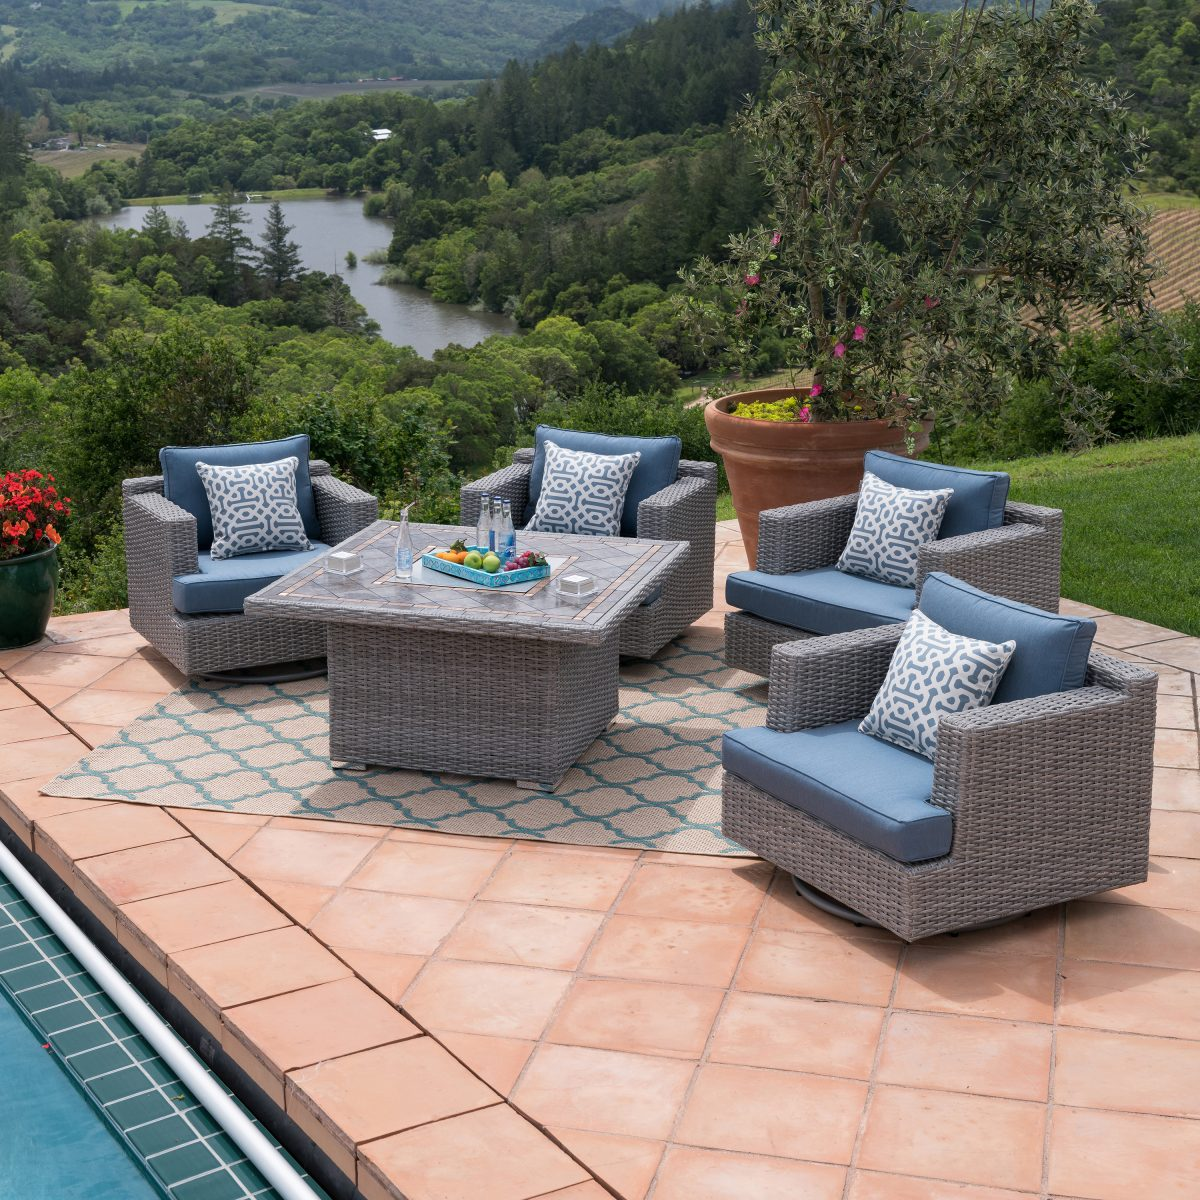 patio furniture for small spaces - Niko 5 piece fire chat set